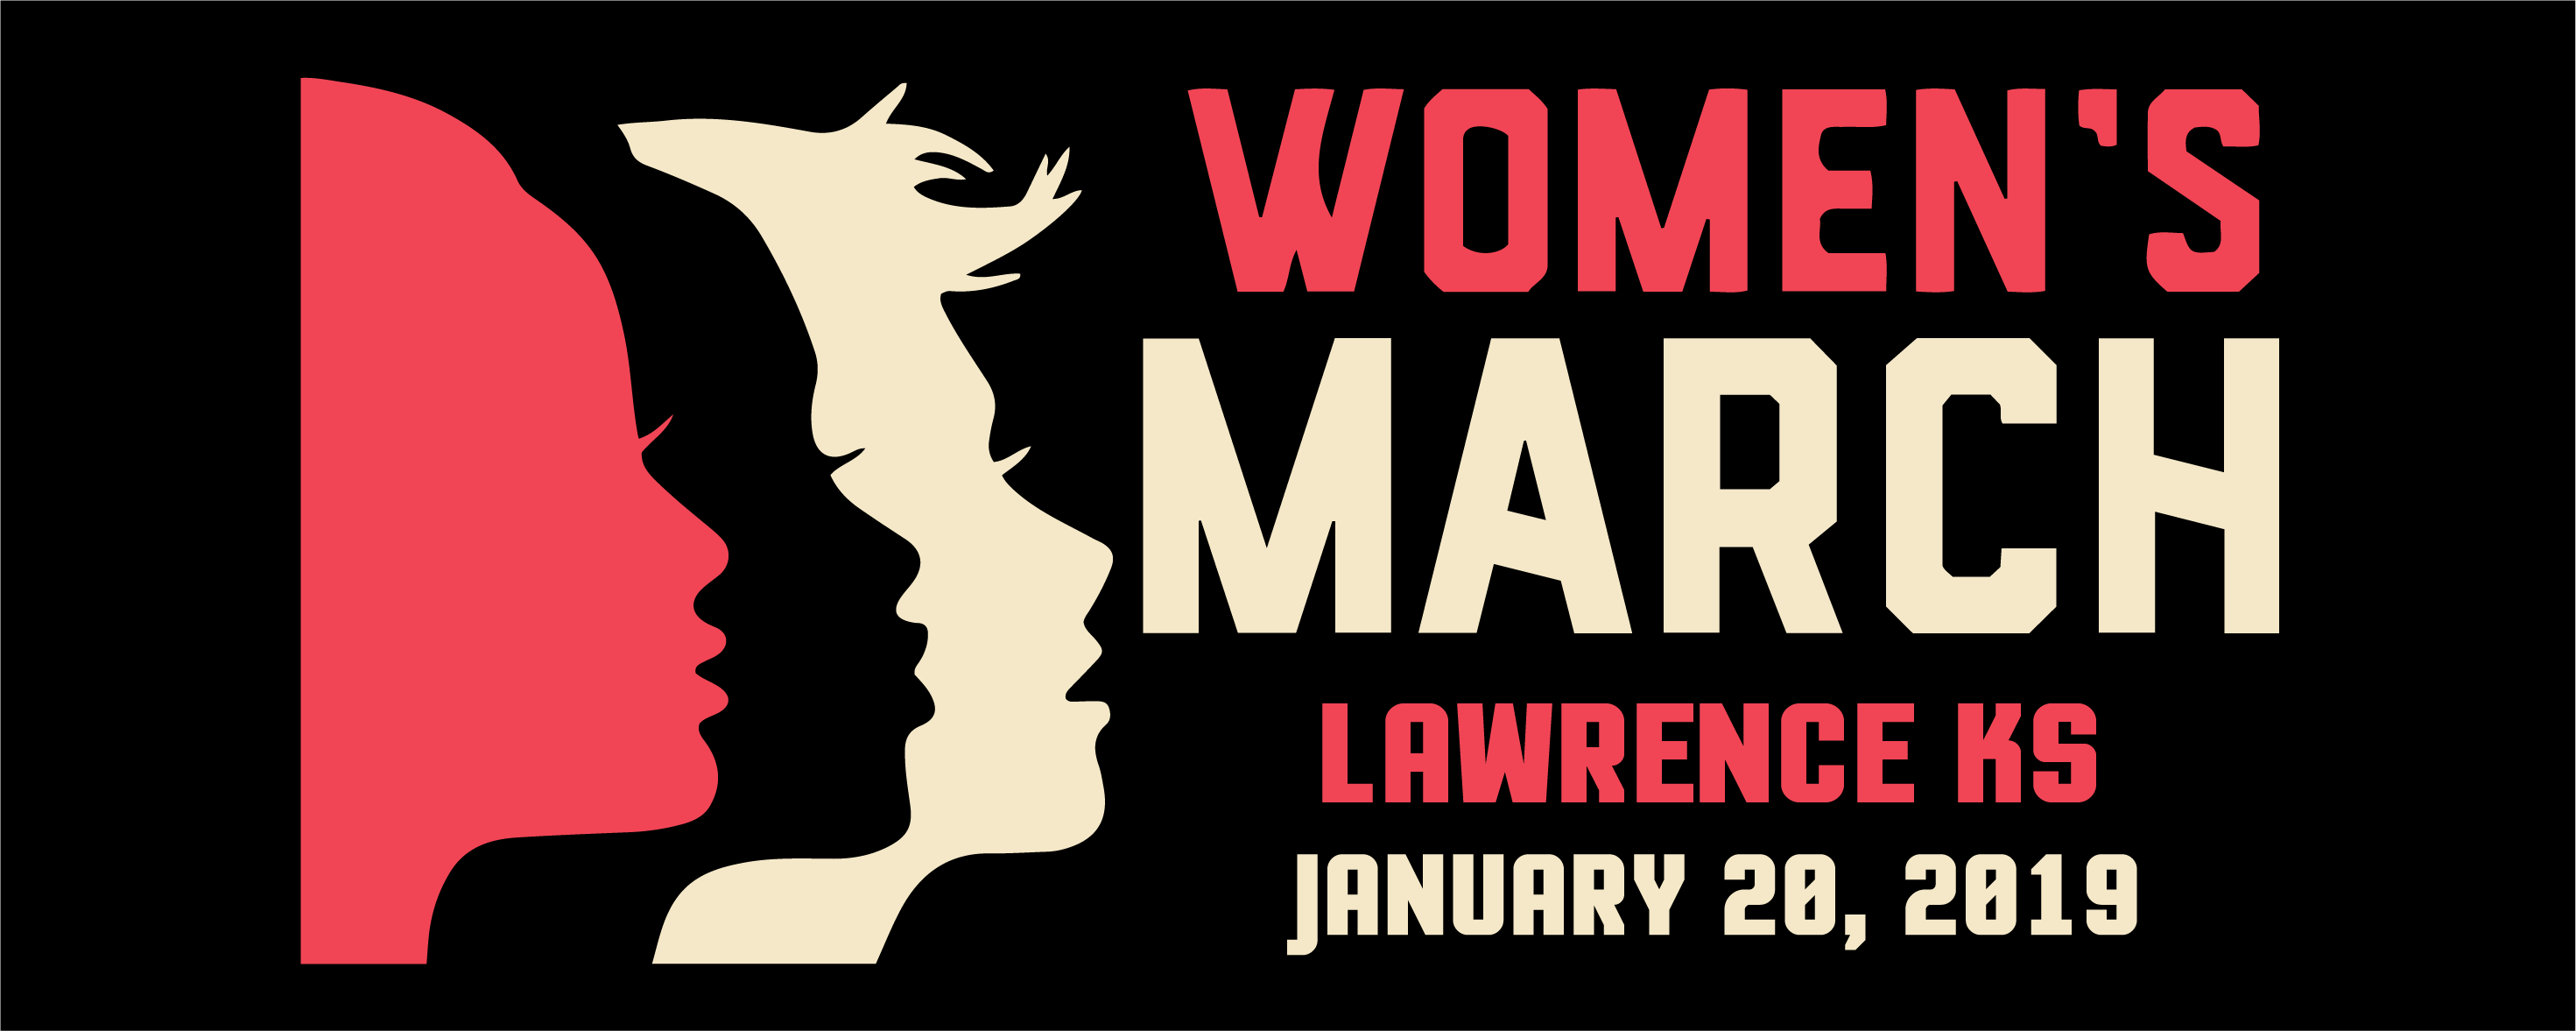 Womens March Lawrence KS 2019